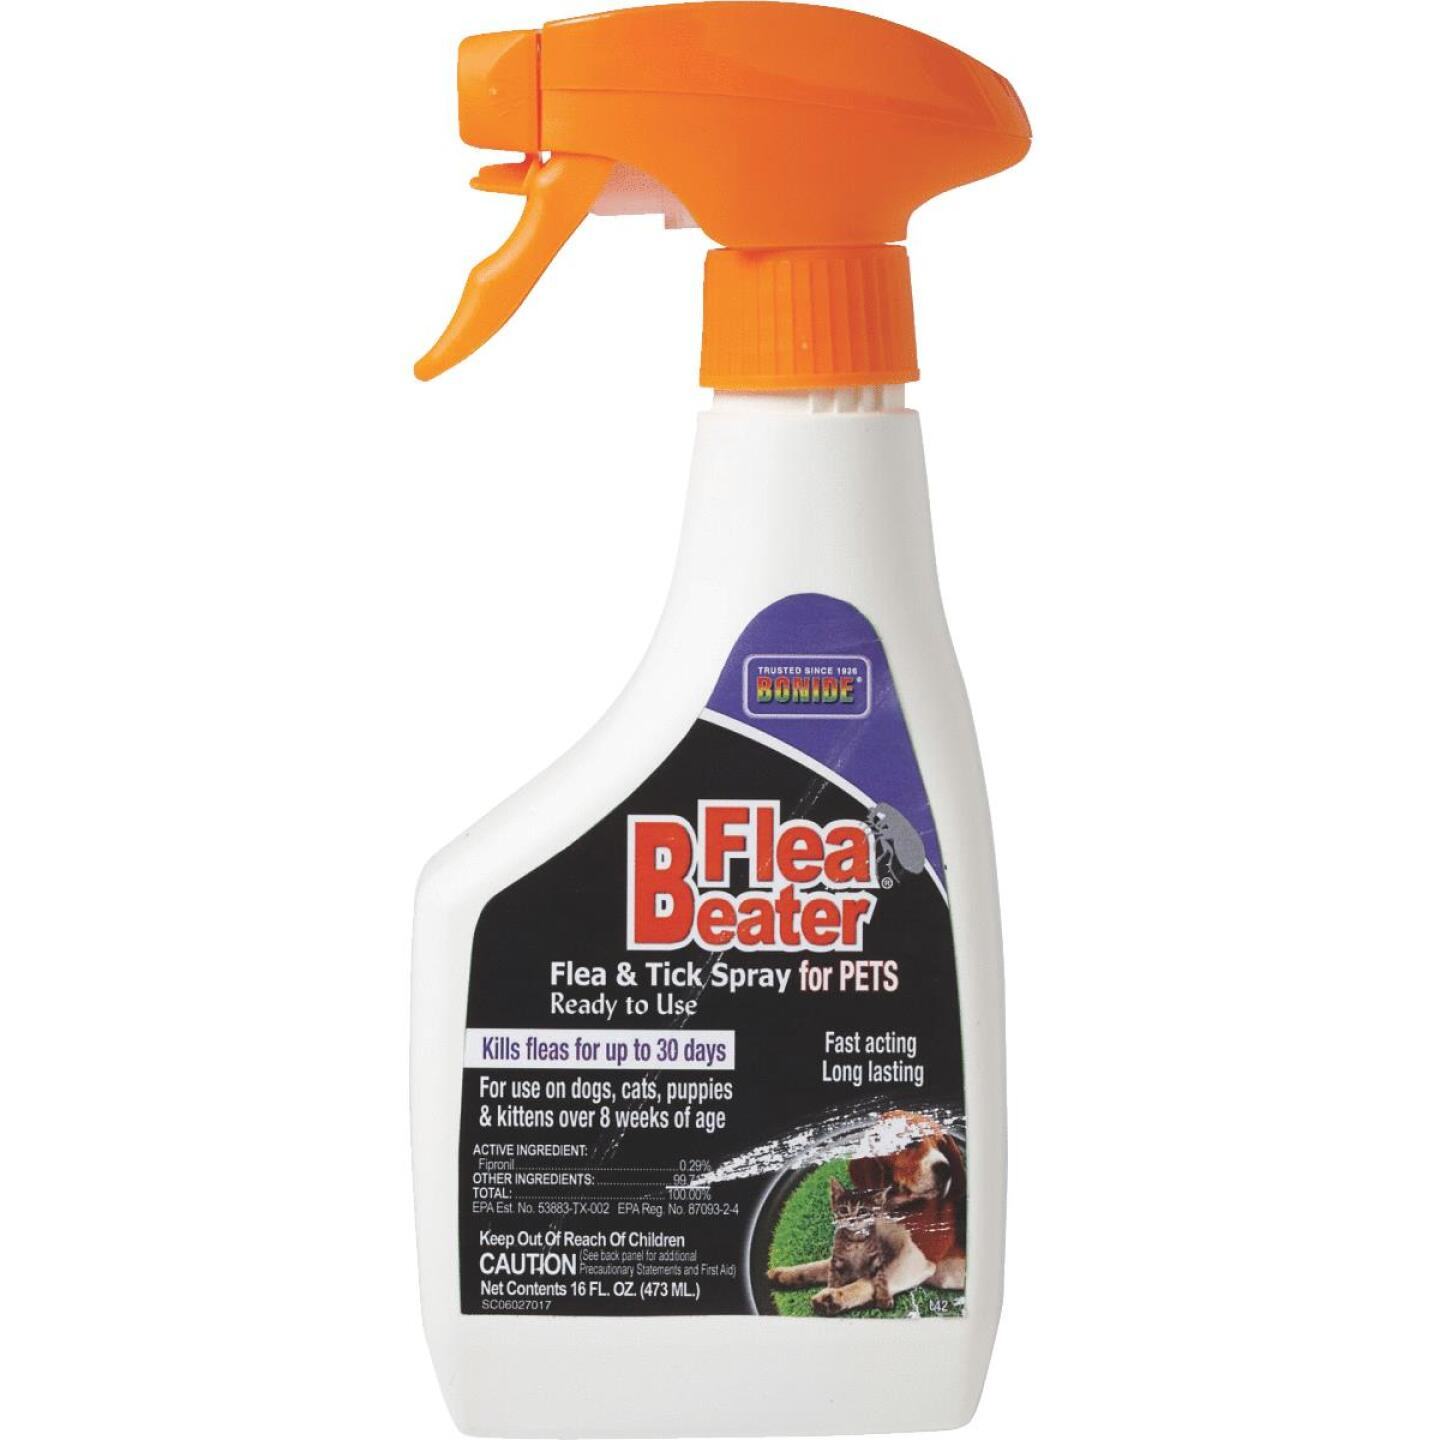 Bonide Flea Beater 30-Day 16 Oz. Flea & Tick Control Spray For Cats & Dogs Image 3